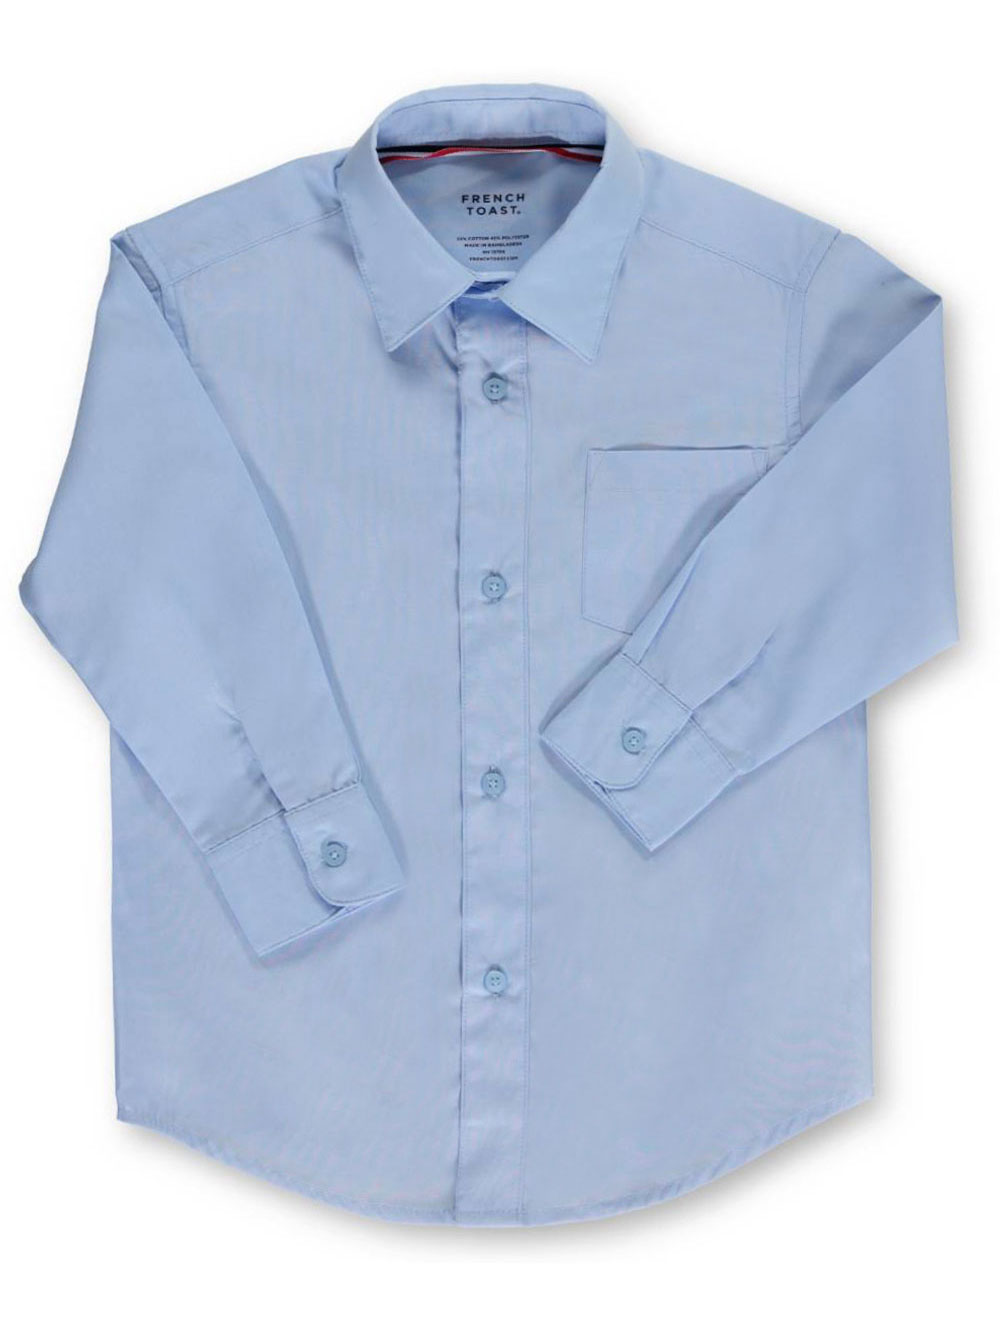 Size 10 Shirts for Boys